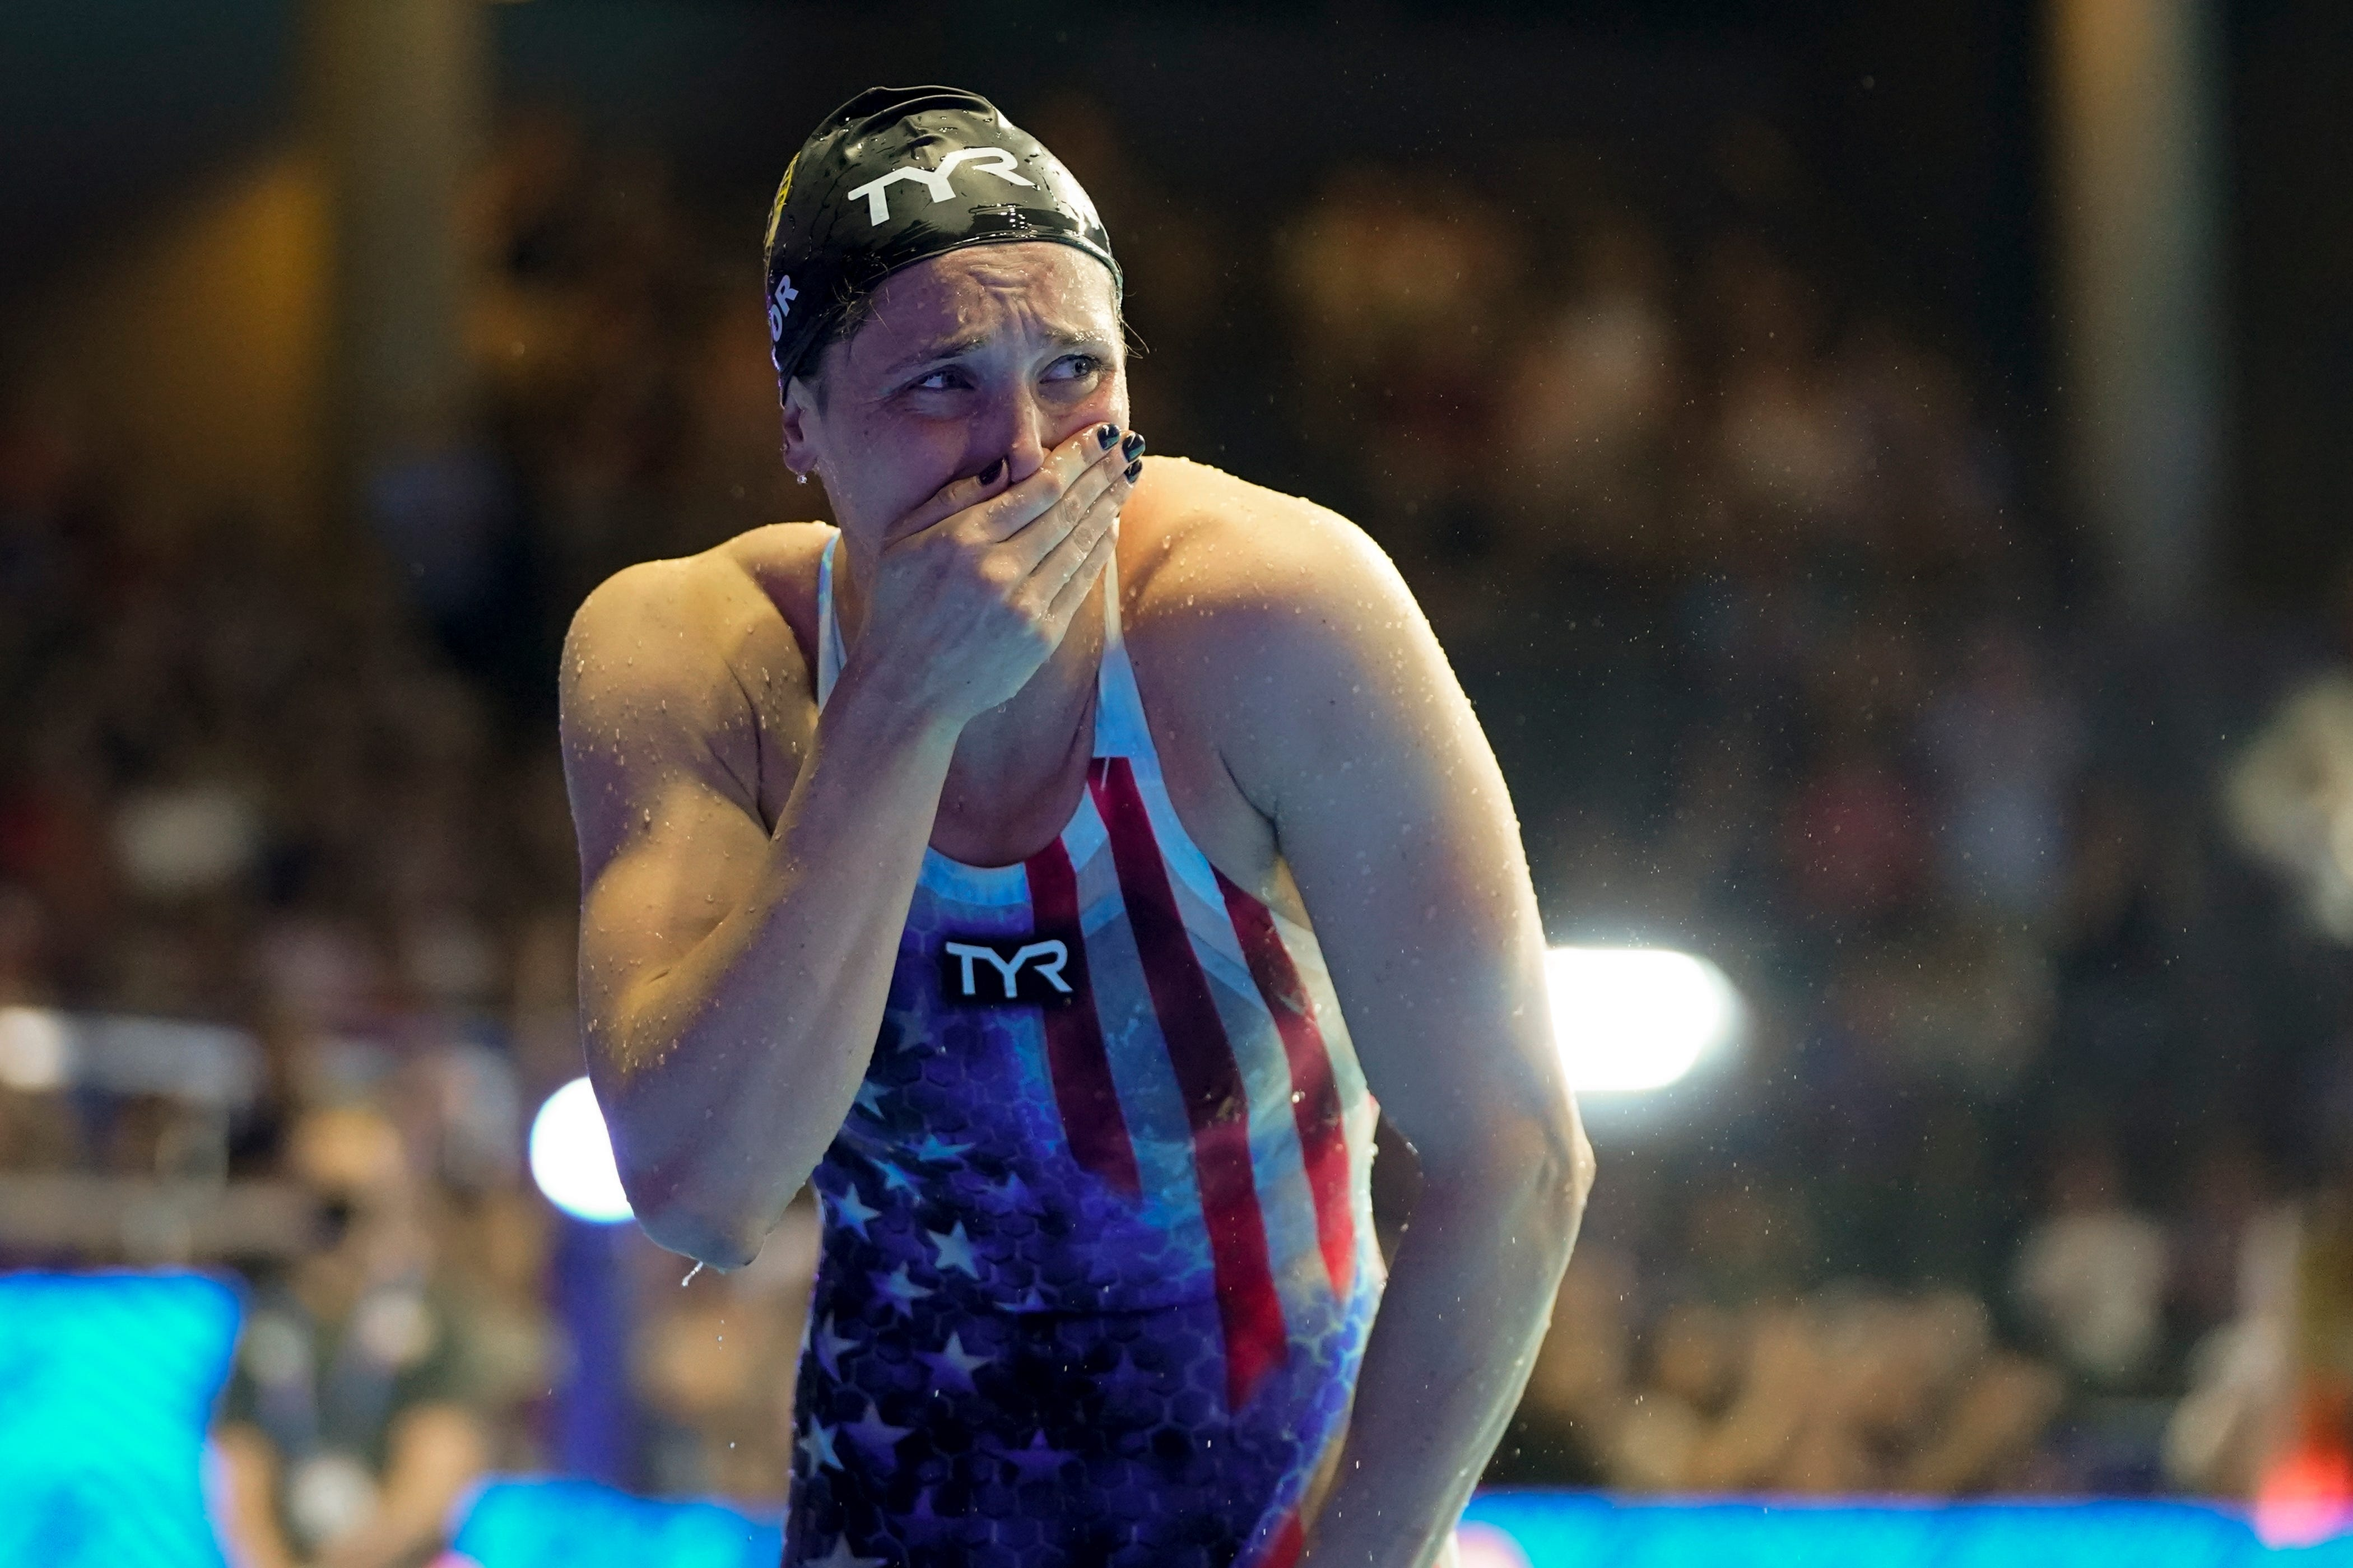 After making Olympic team, Annie Lazor talks about late father